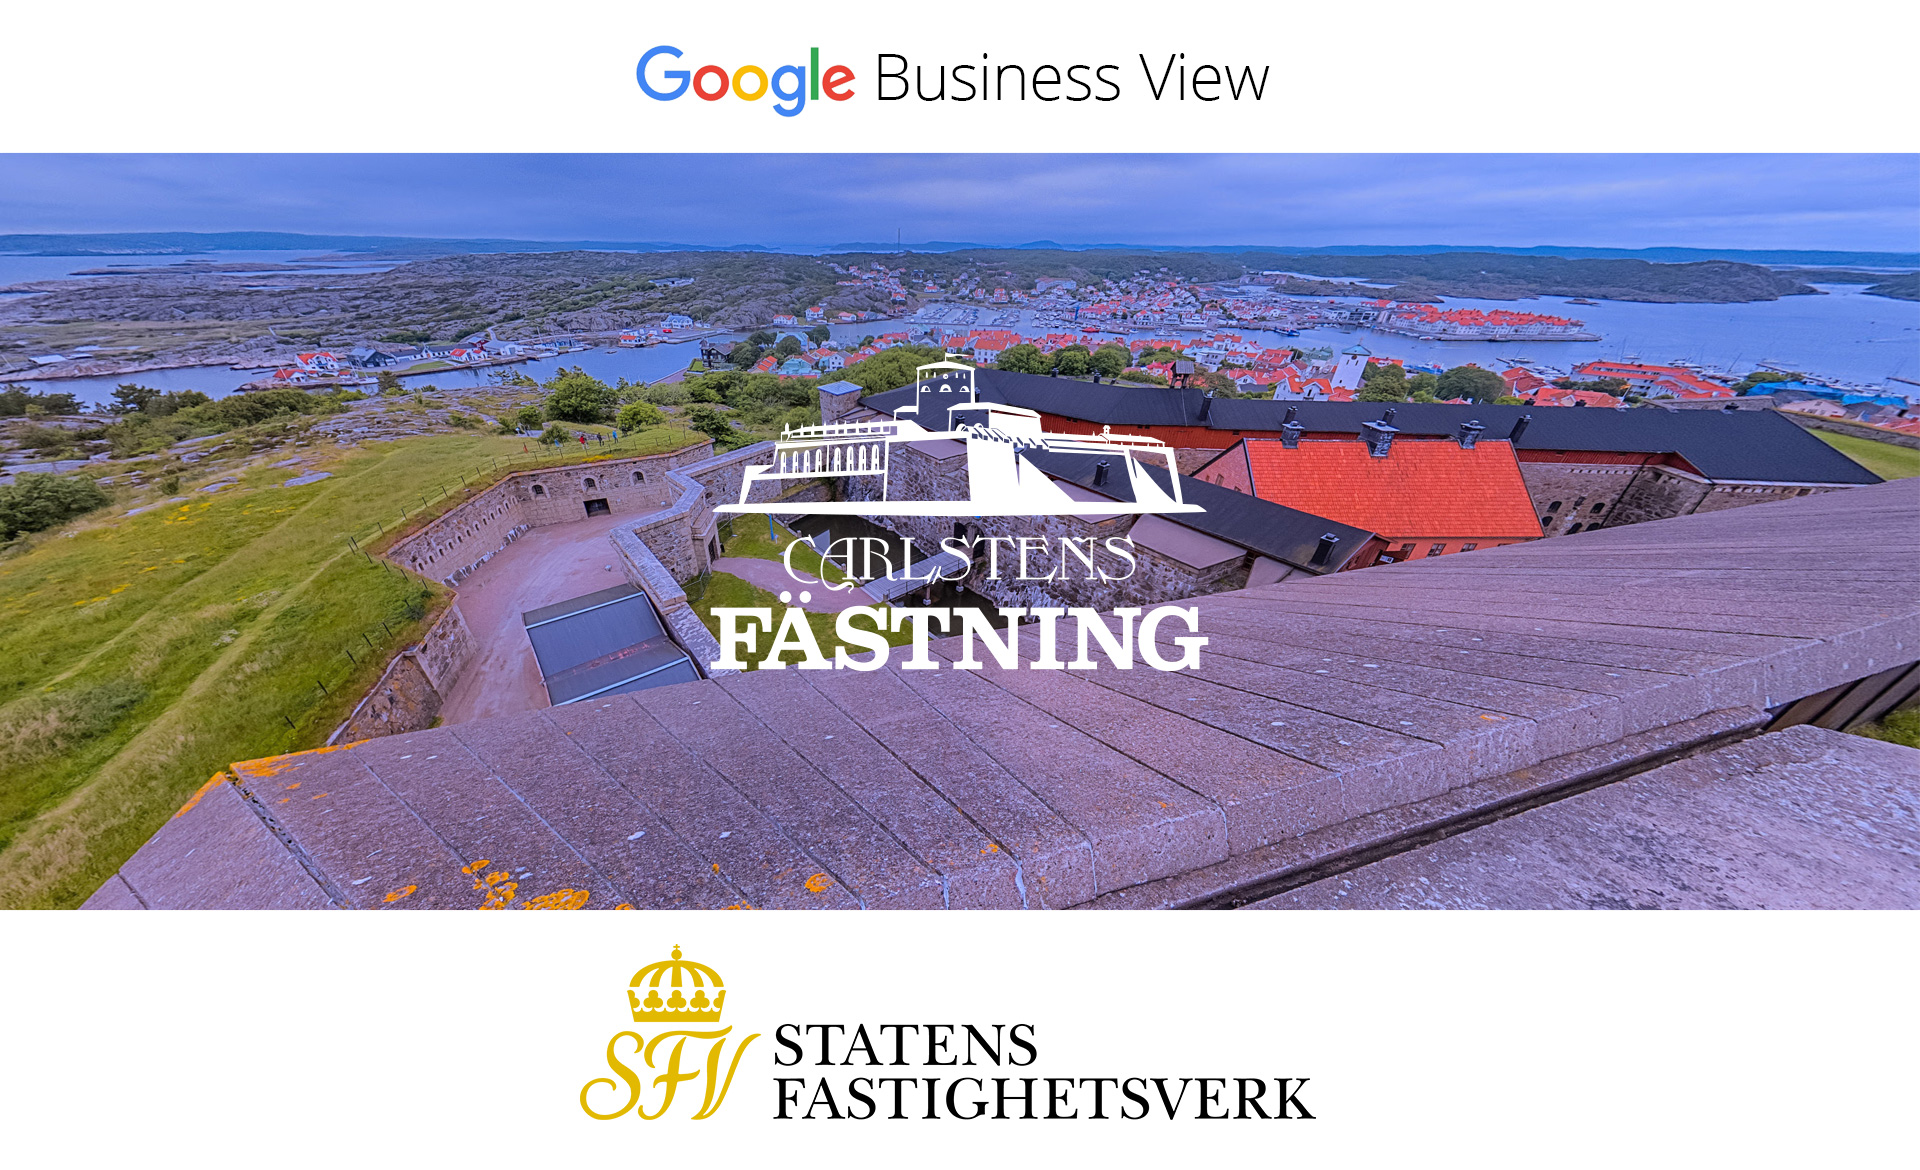 Bästa SEO byrå - Google Business View